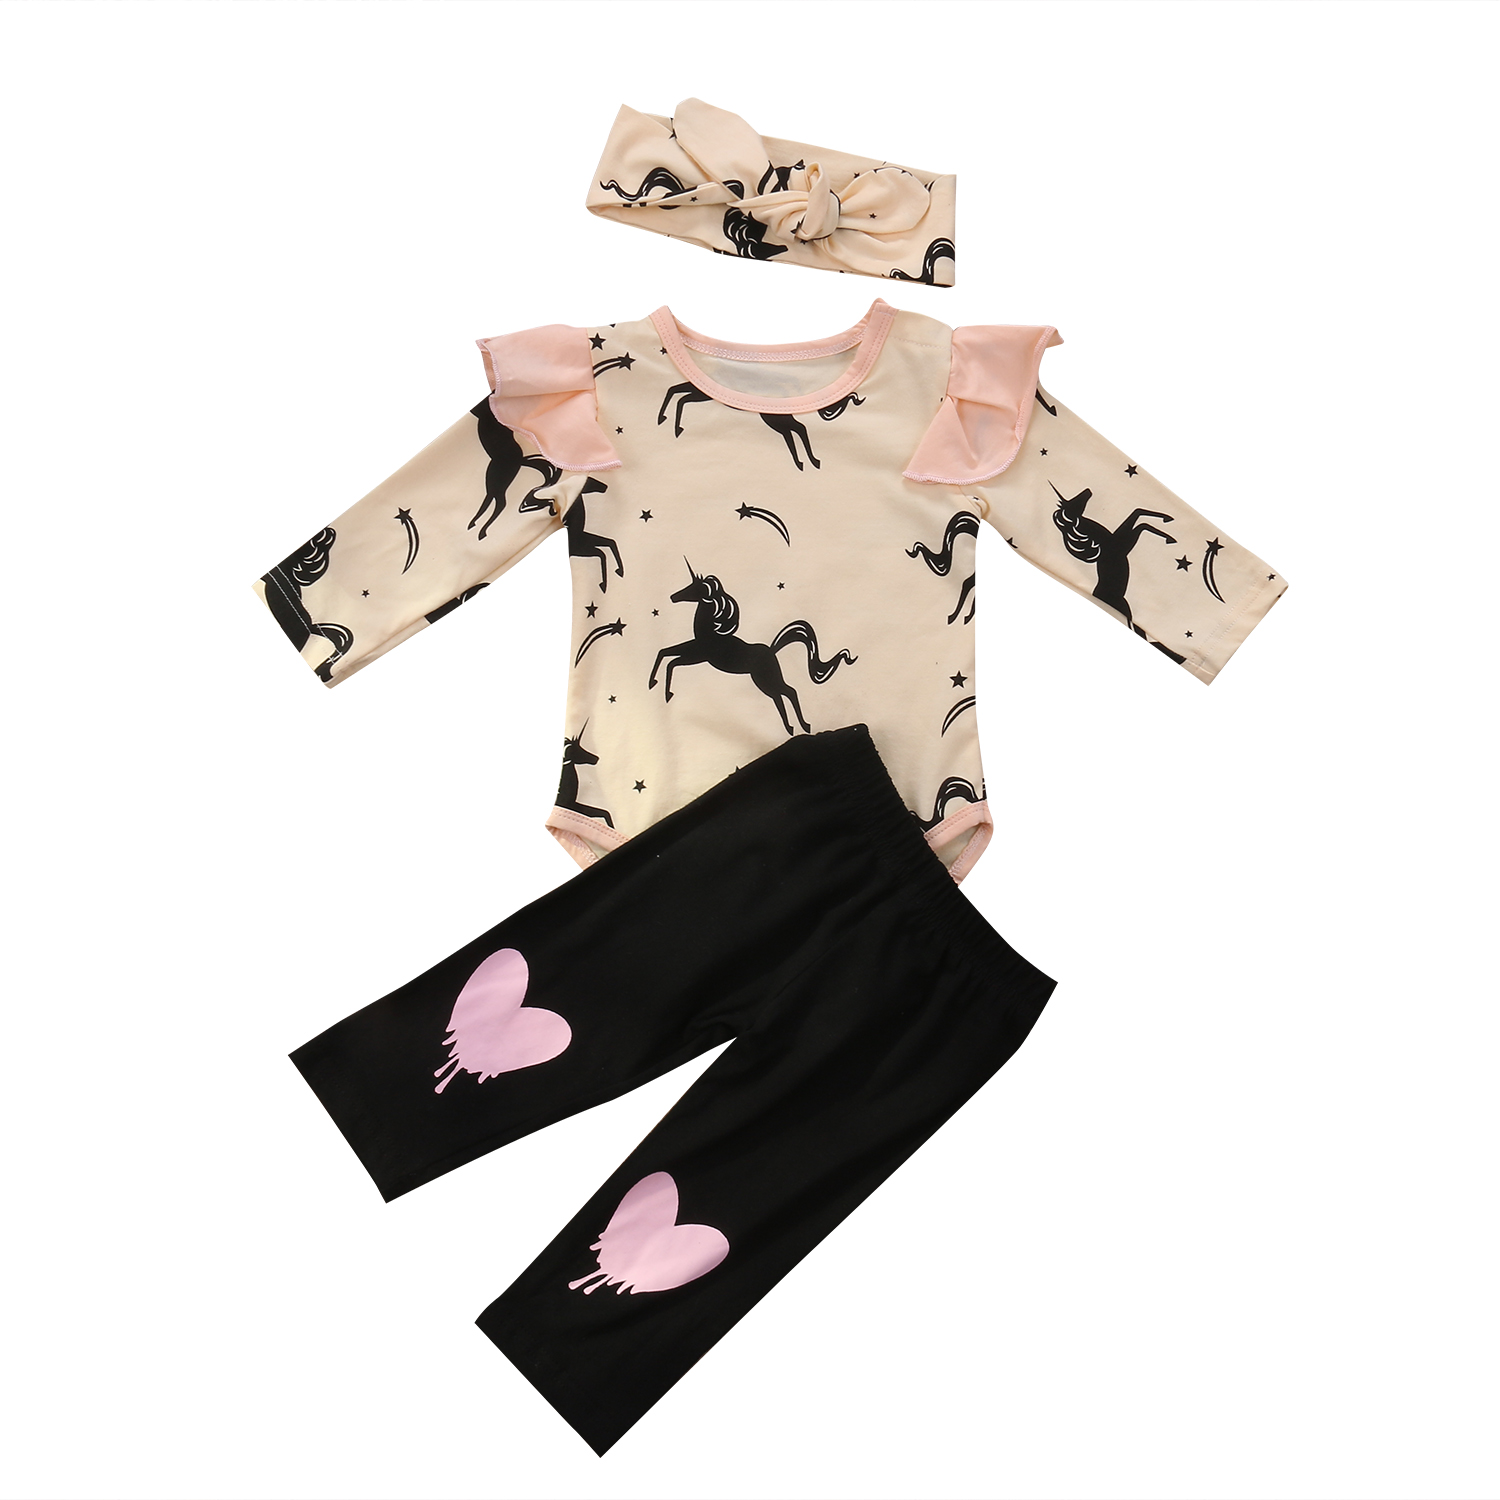 Newborn Infant Baby Girl Kids Bodysuit Romper T-shirt+Long Pants Outfit Clothes 3PCS Clothing Sets женское платье x fashion s m l xl wc 013